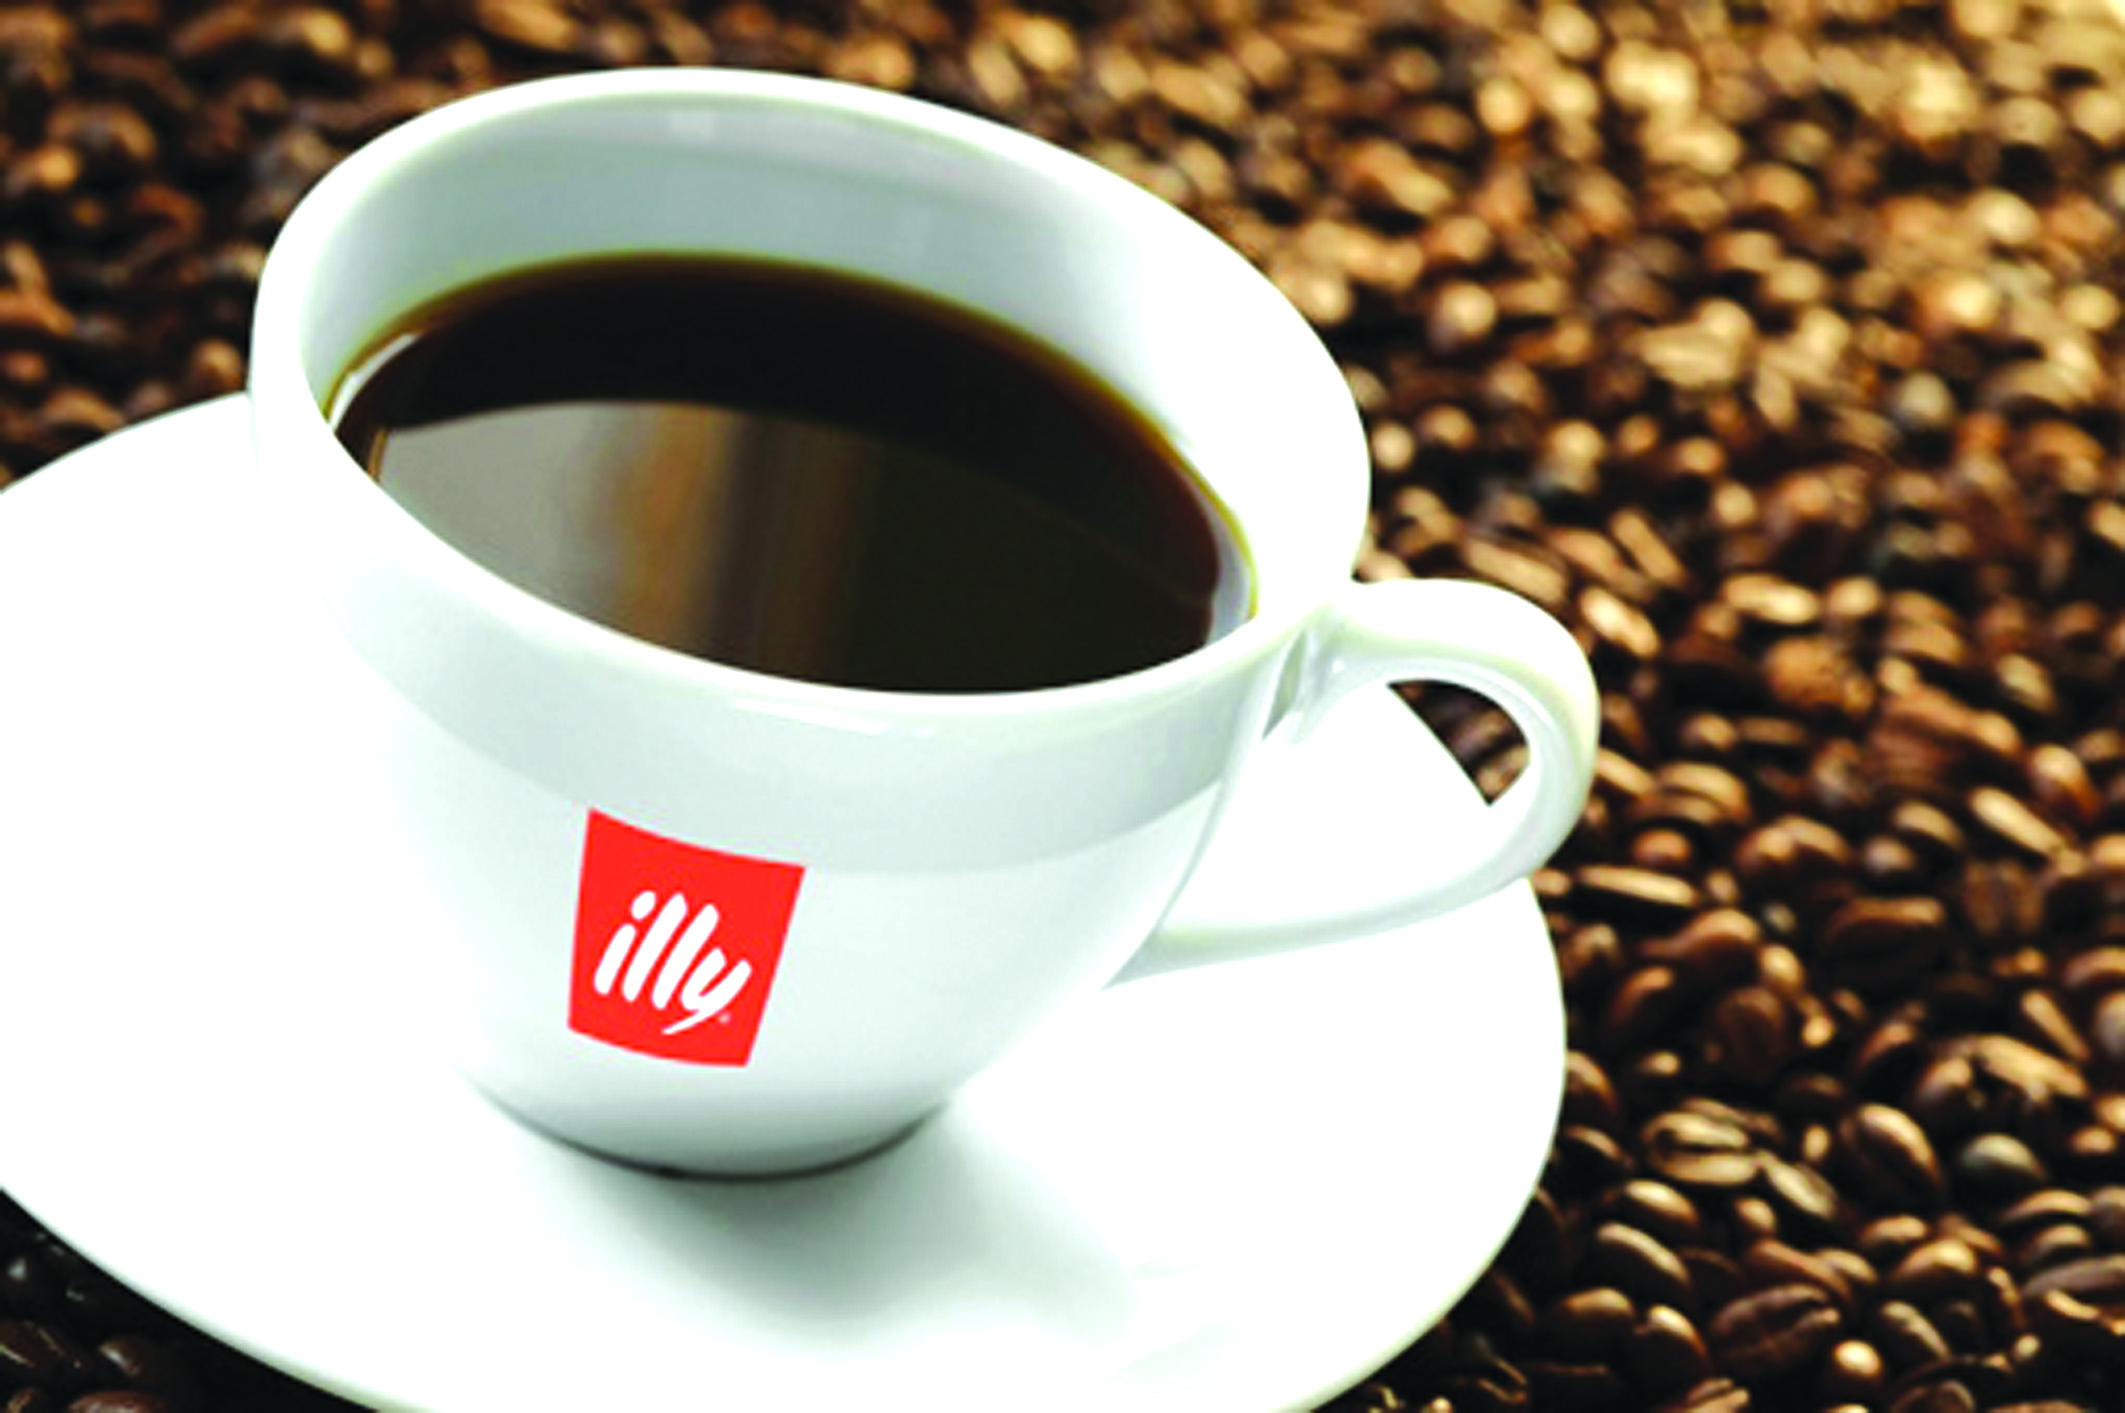 illy coffee in a cup